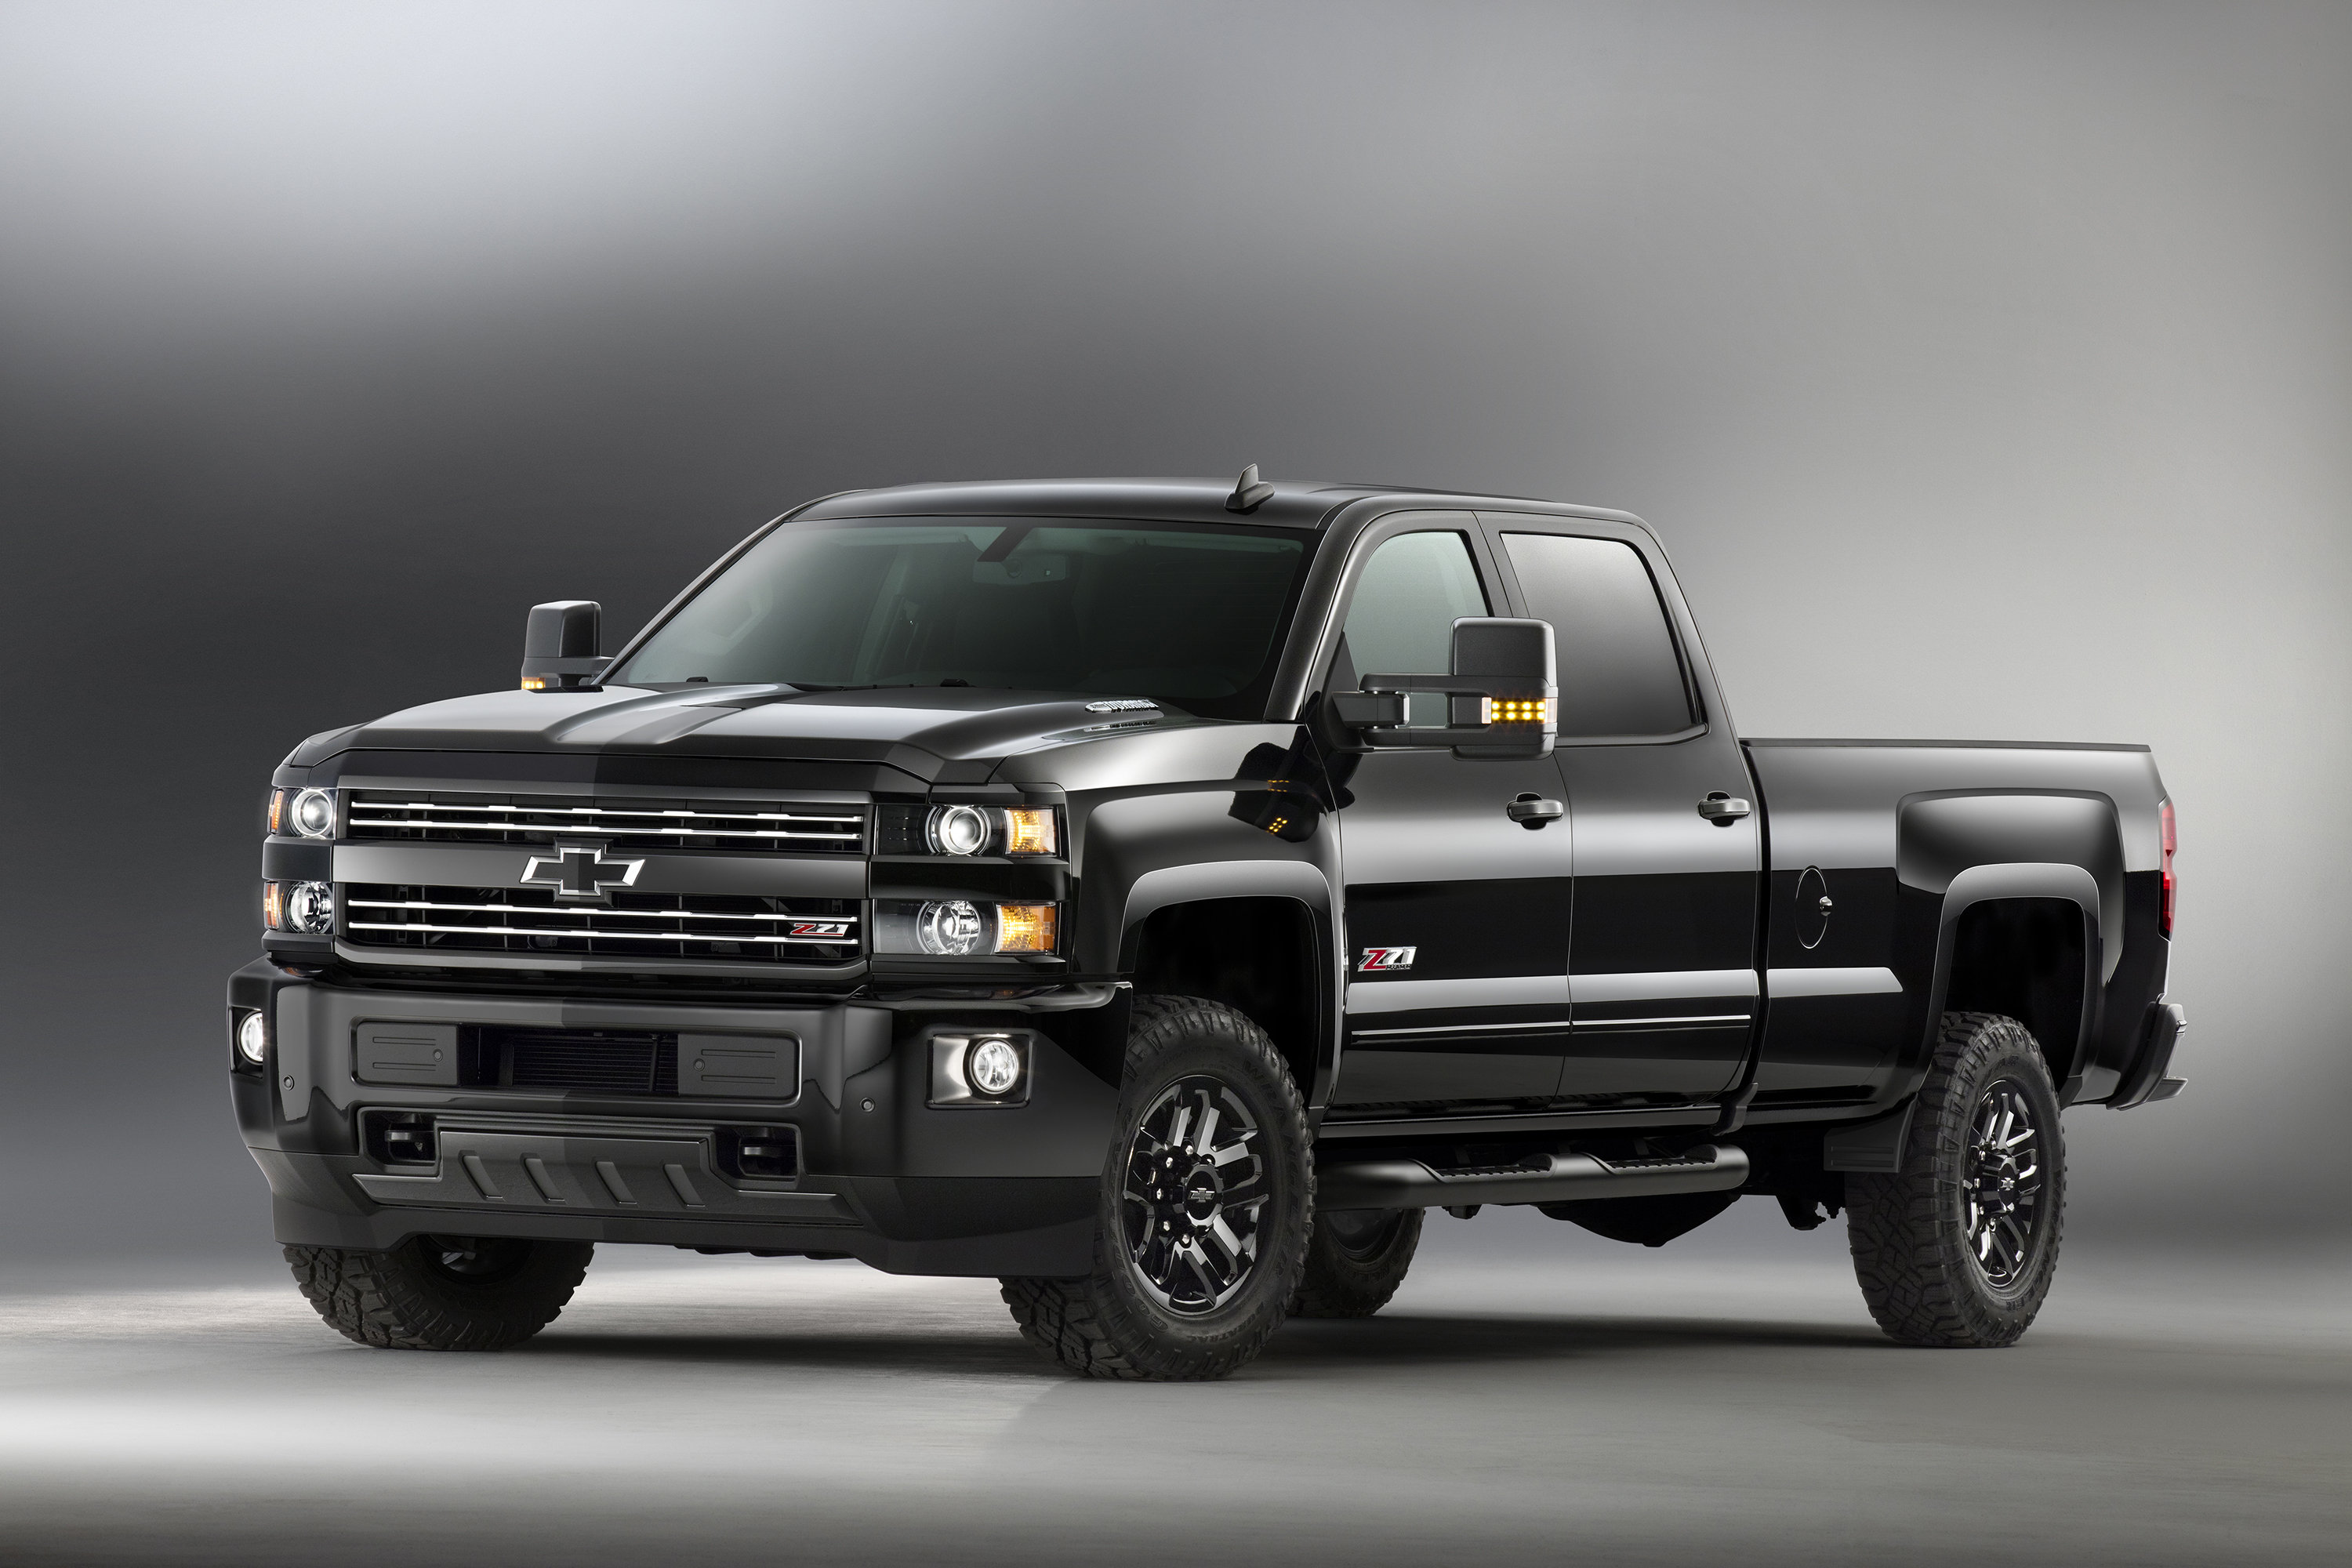 Introduced in September, 2016, the 2016 Chevrolet Silverado2500 HD Z71 Midnight Edition combines off-road equipment with a monochromatic black appearance. Is is part of a portfolio of special-edition trucks whose popularity helped Chevrolet truck sales increase 27 percent in 2015 - double the increase for the total truck market.